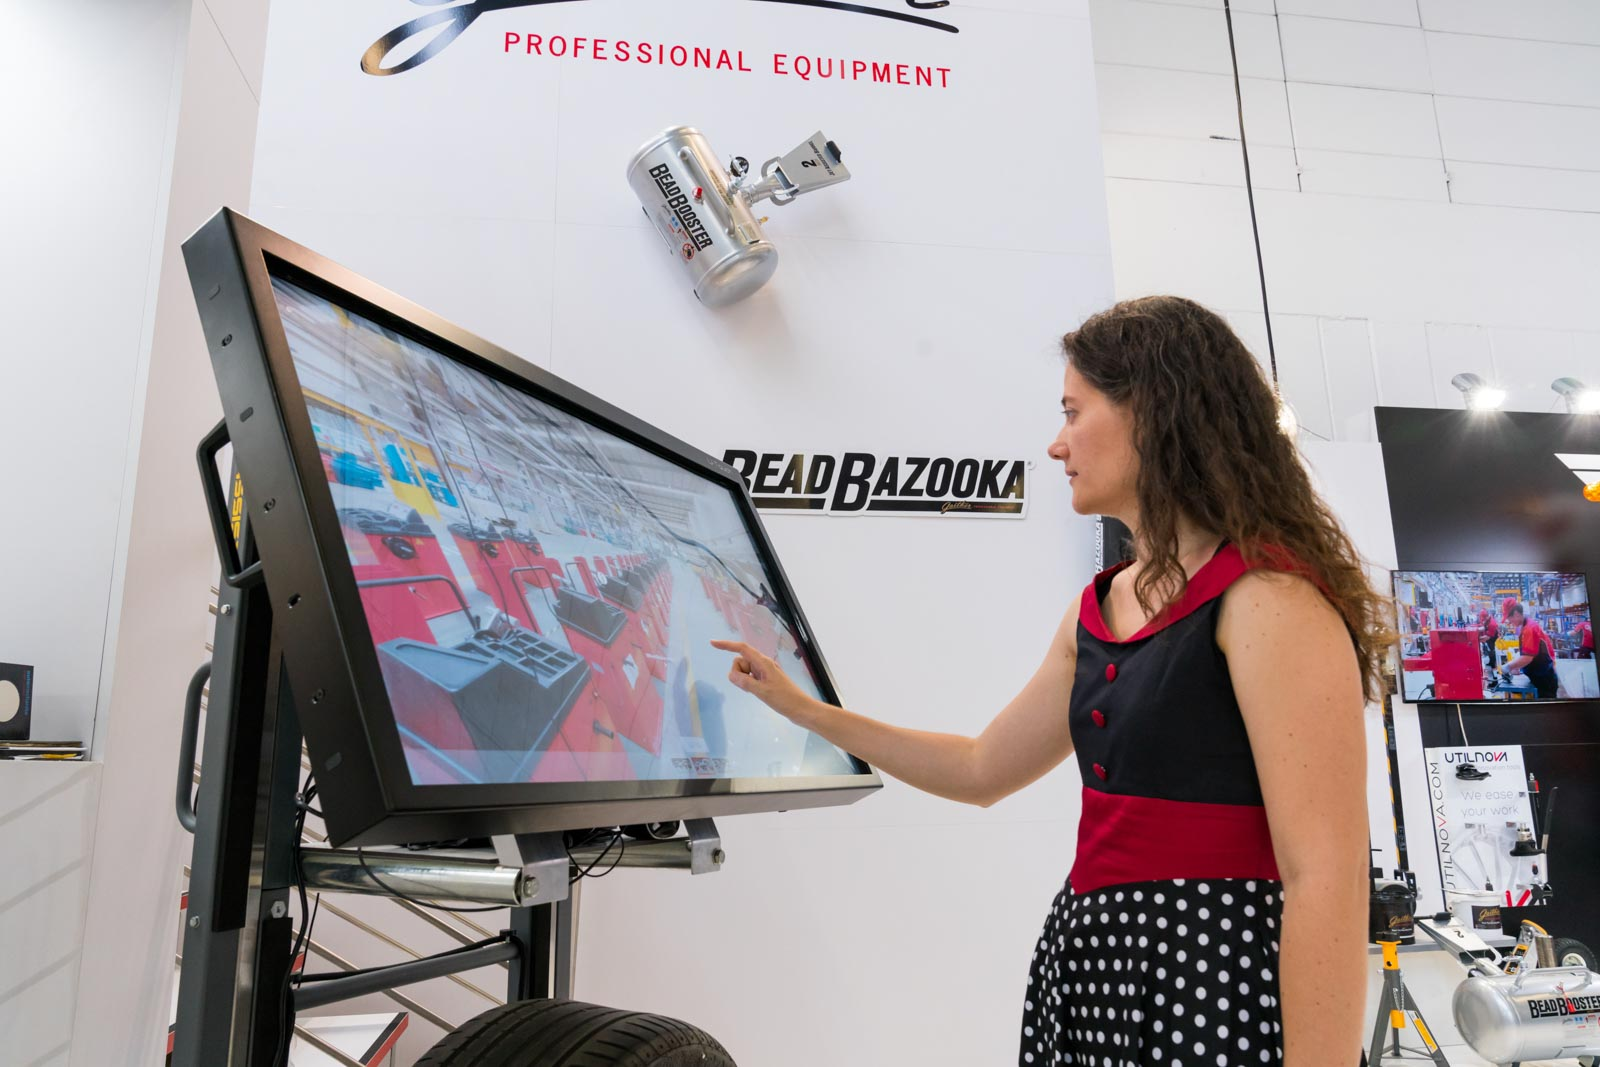 Marije looking at a touchscreen monitor